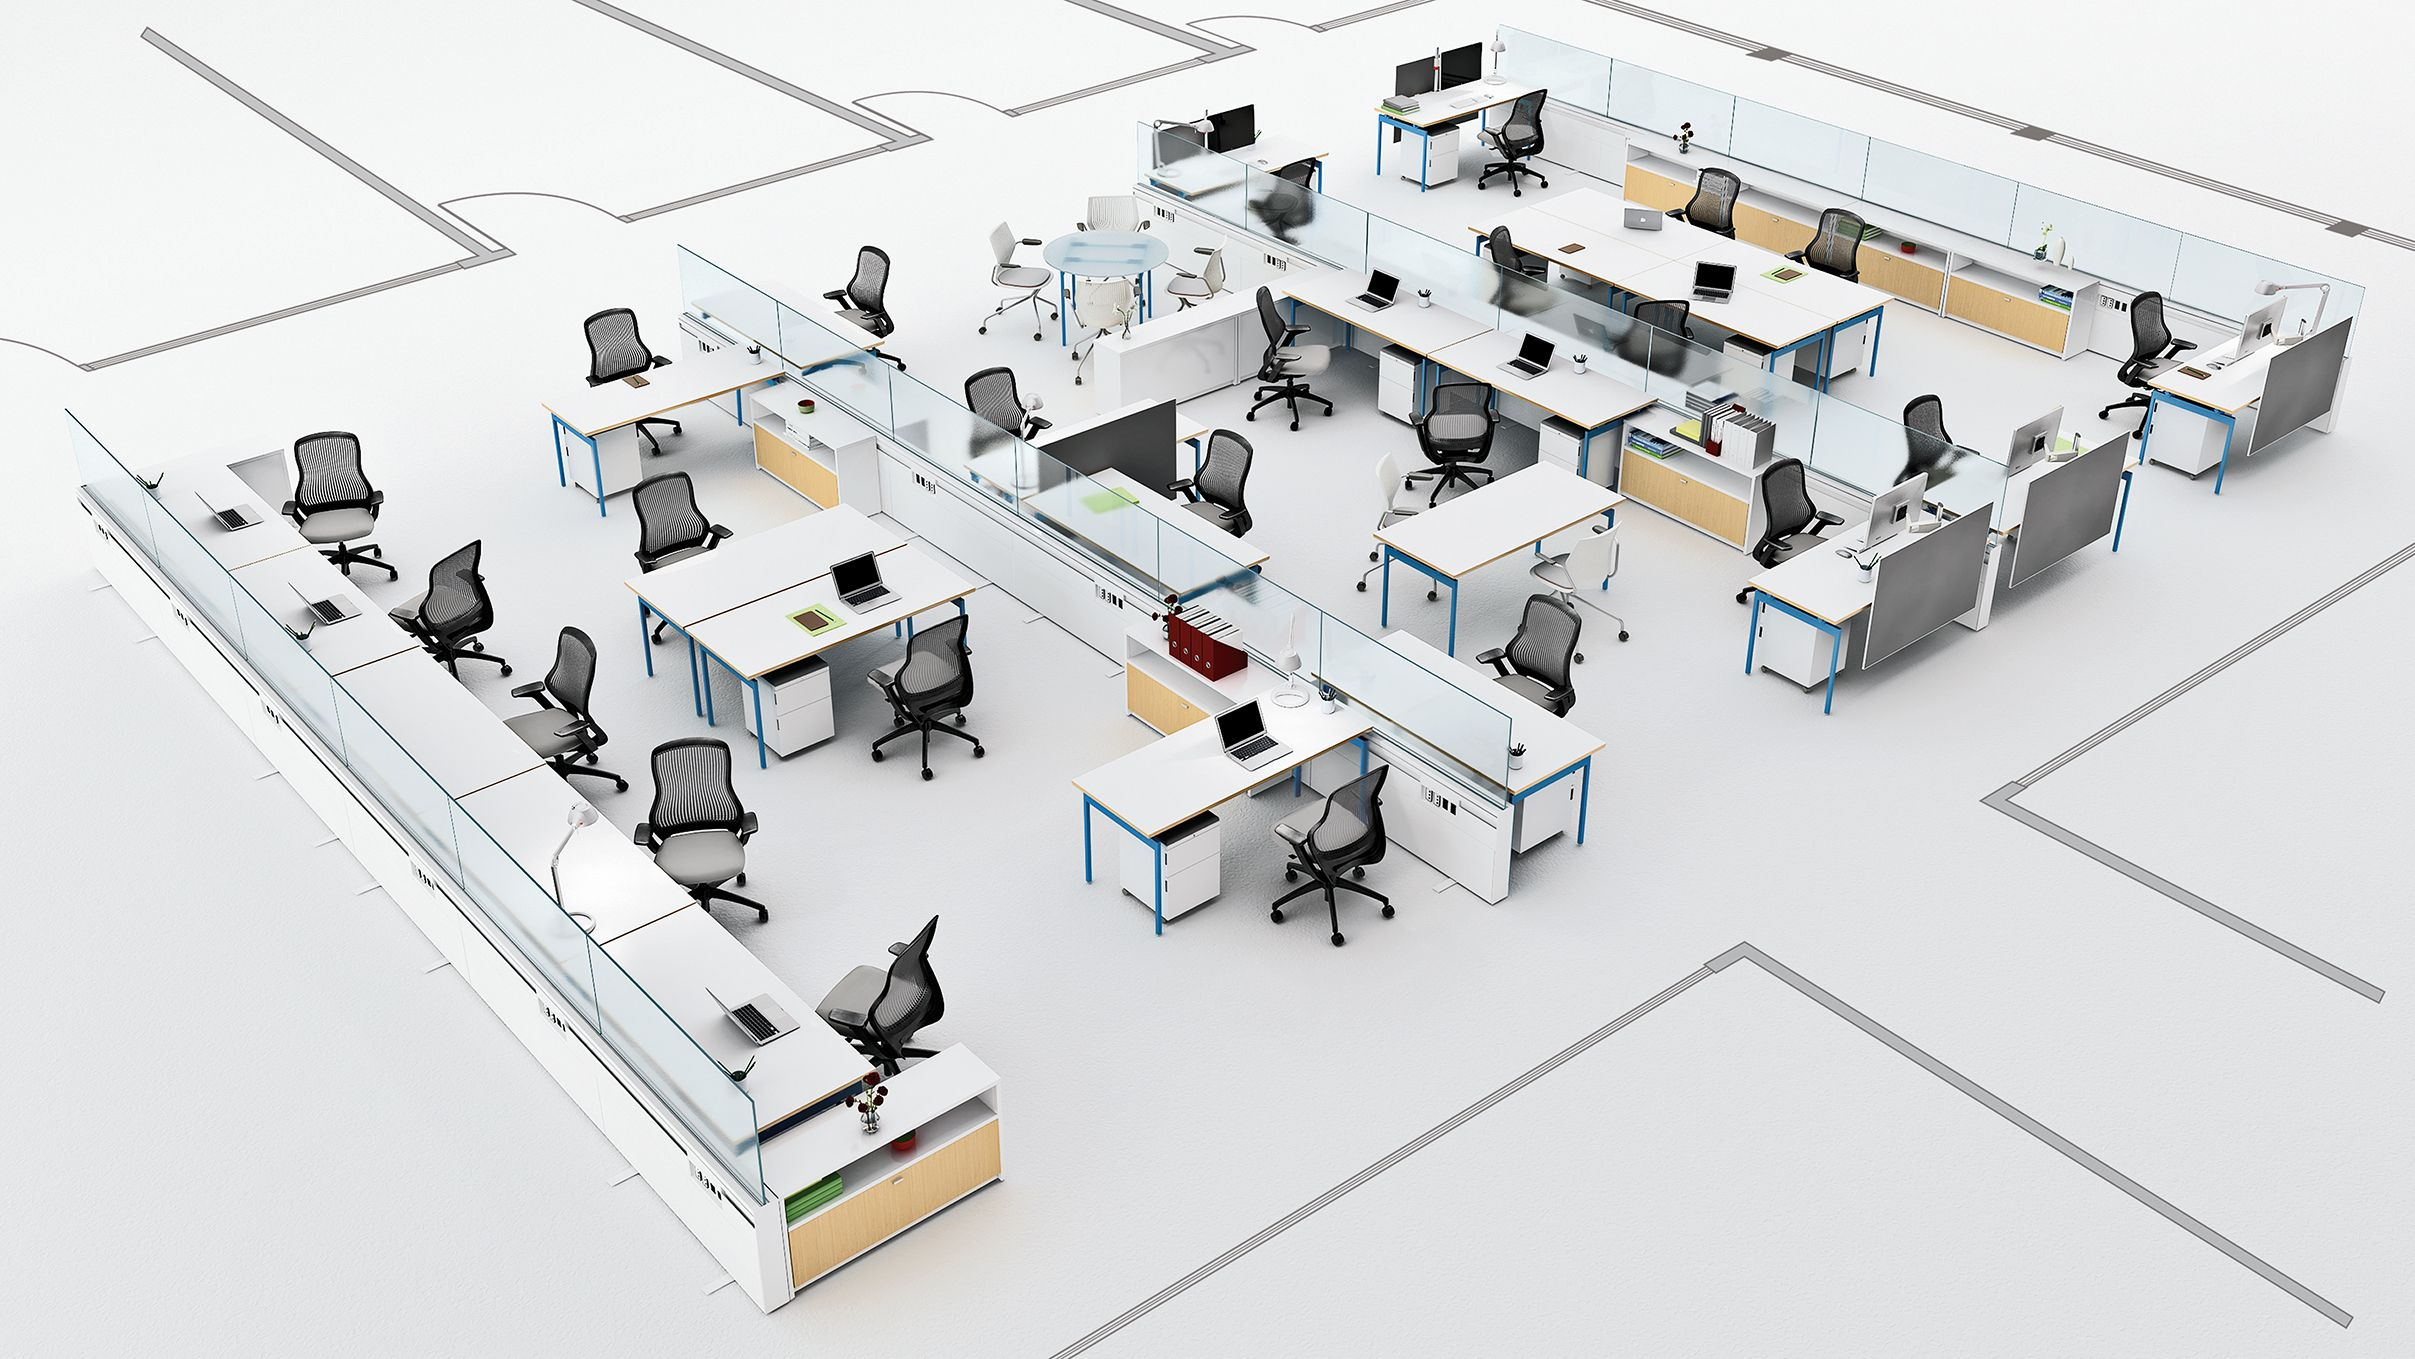 Innovation spaces workspace planning google search for Office space planning ideas